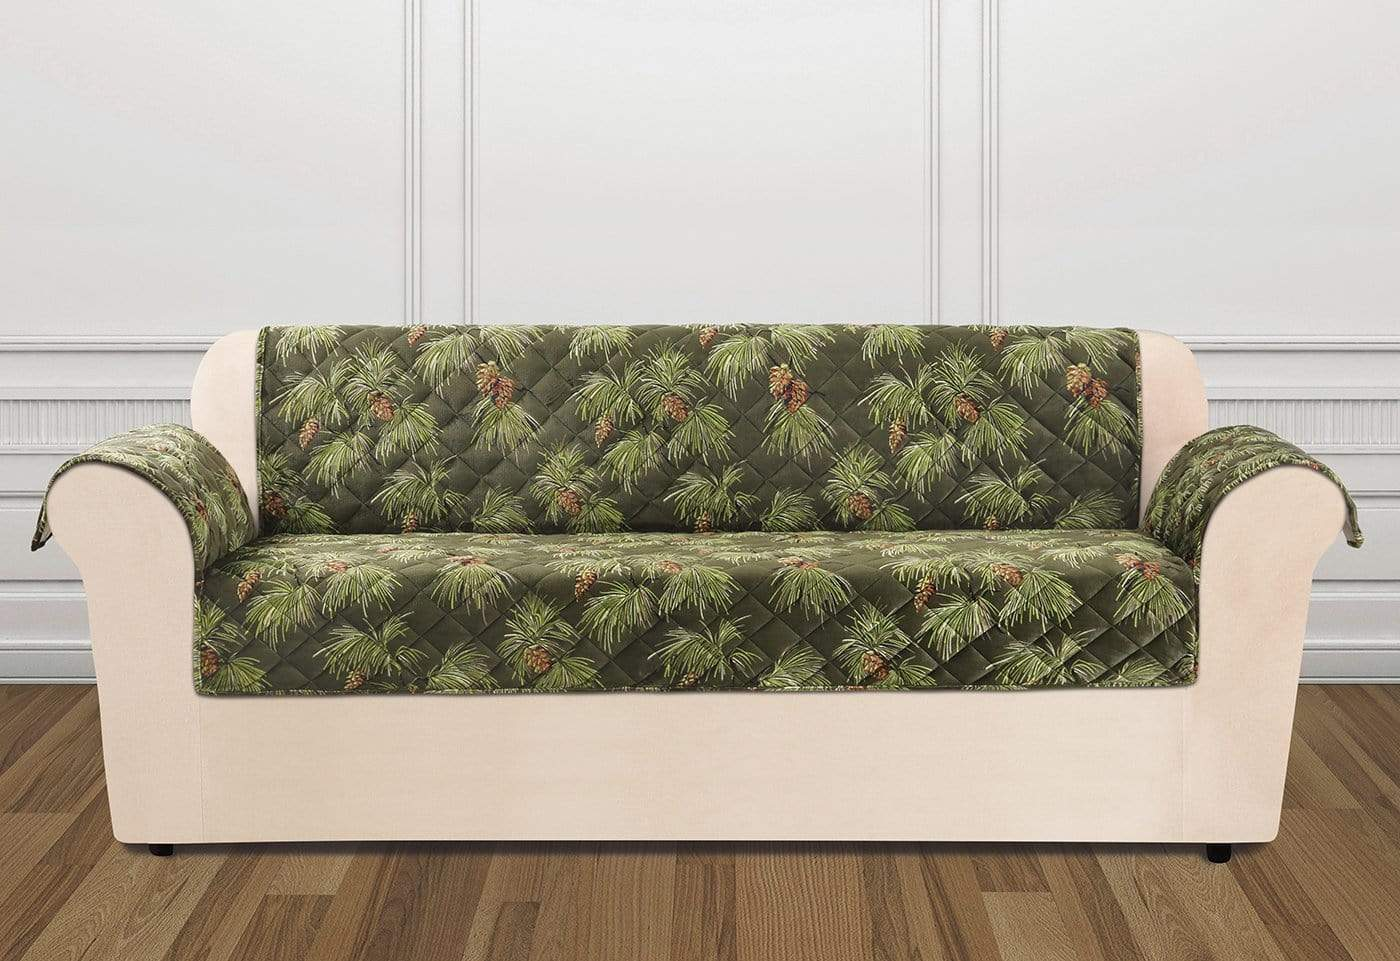 Holiday Sofa Furniture Cover 100% Polyester Pet Furniture Cover Machine Washable - Sofa / Pinecone Evergreen